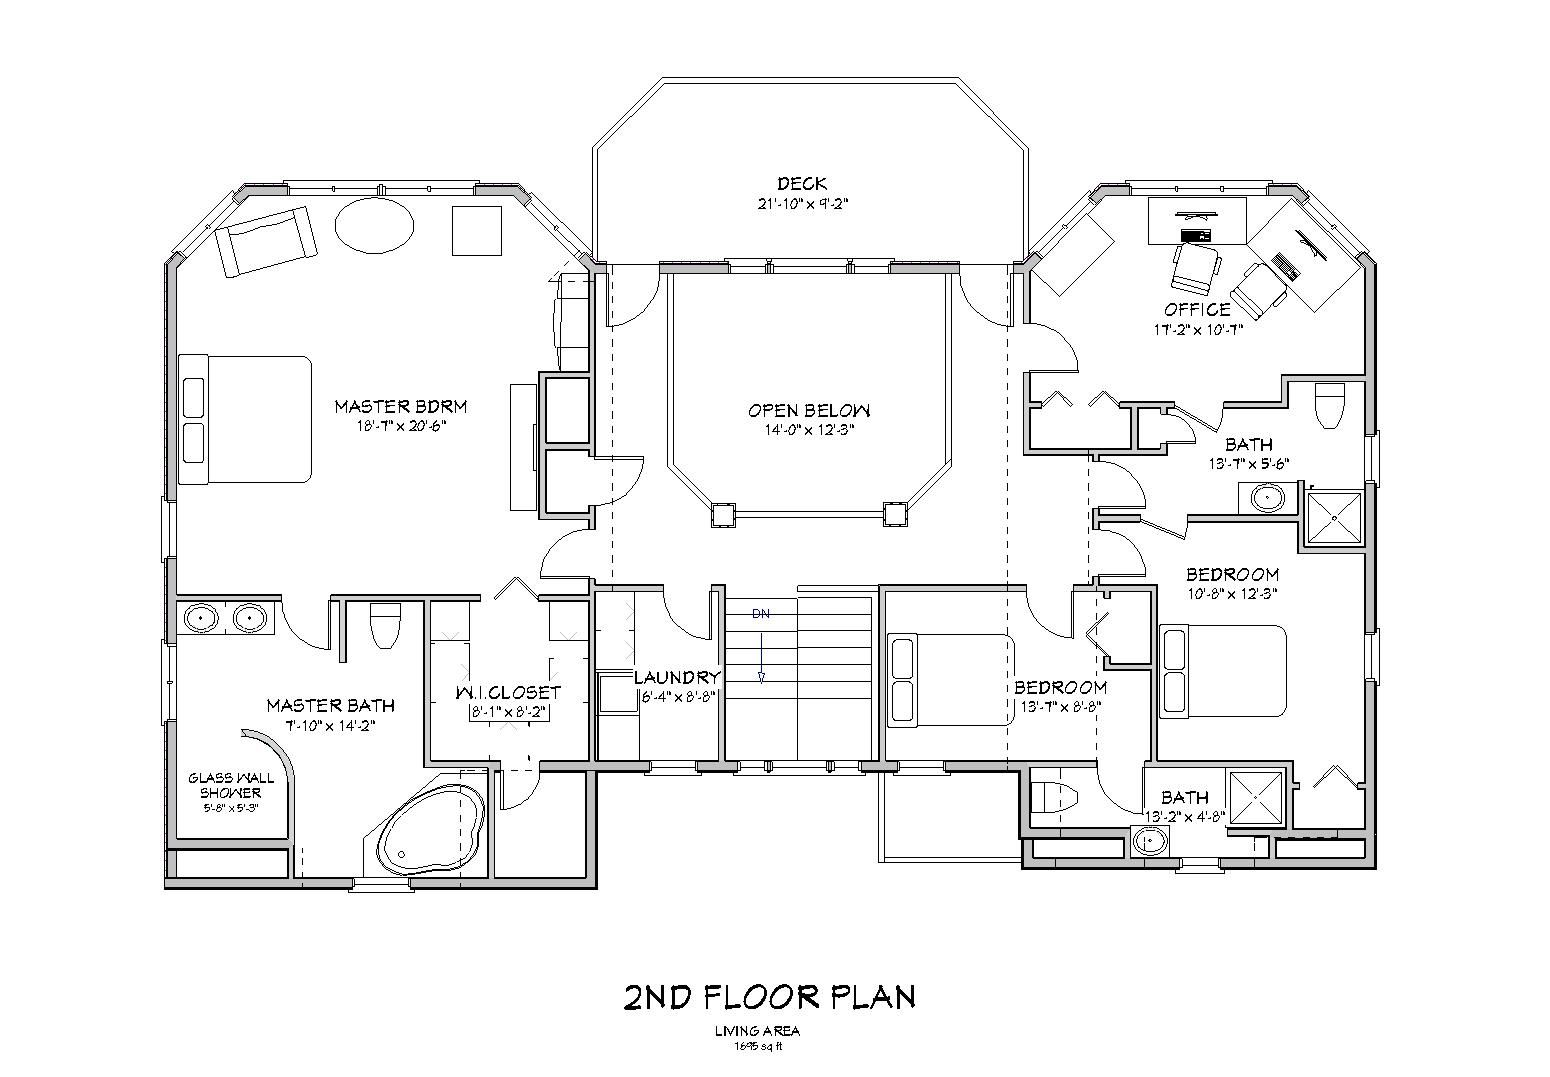 Pin By Susie Gonzales On Renovation Beach House Floor Plans Beach House Flooring House Floor Plans